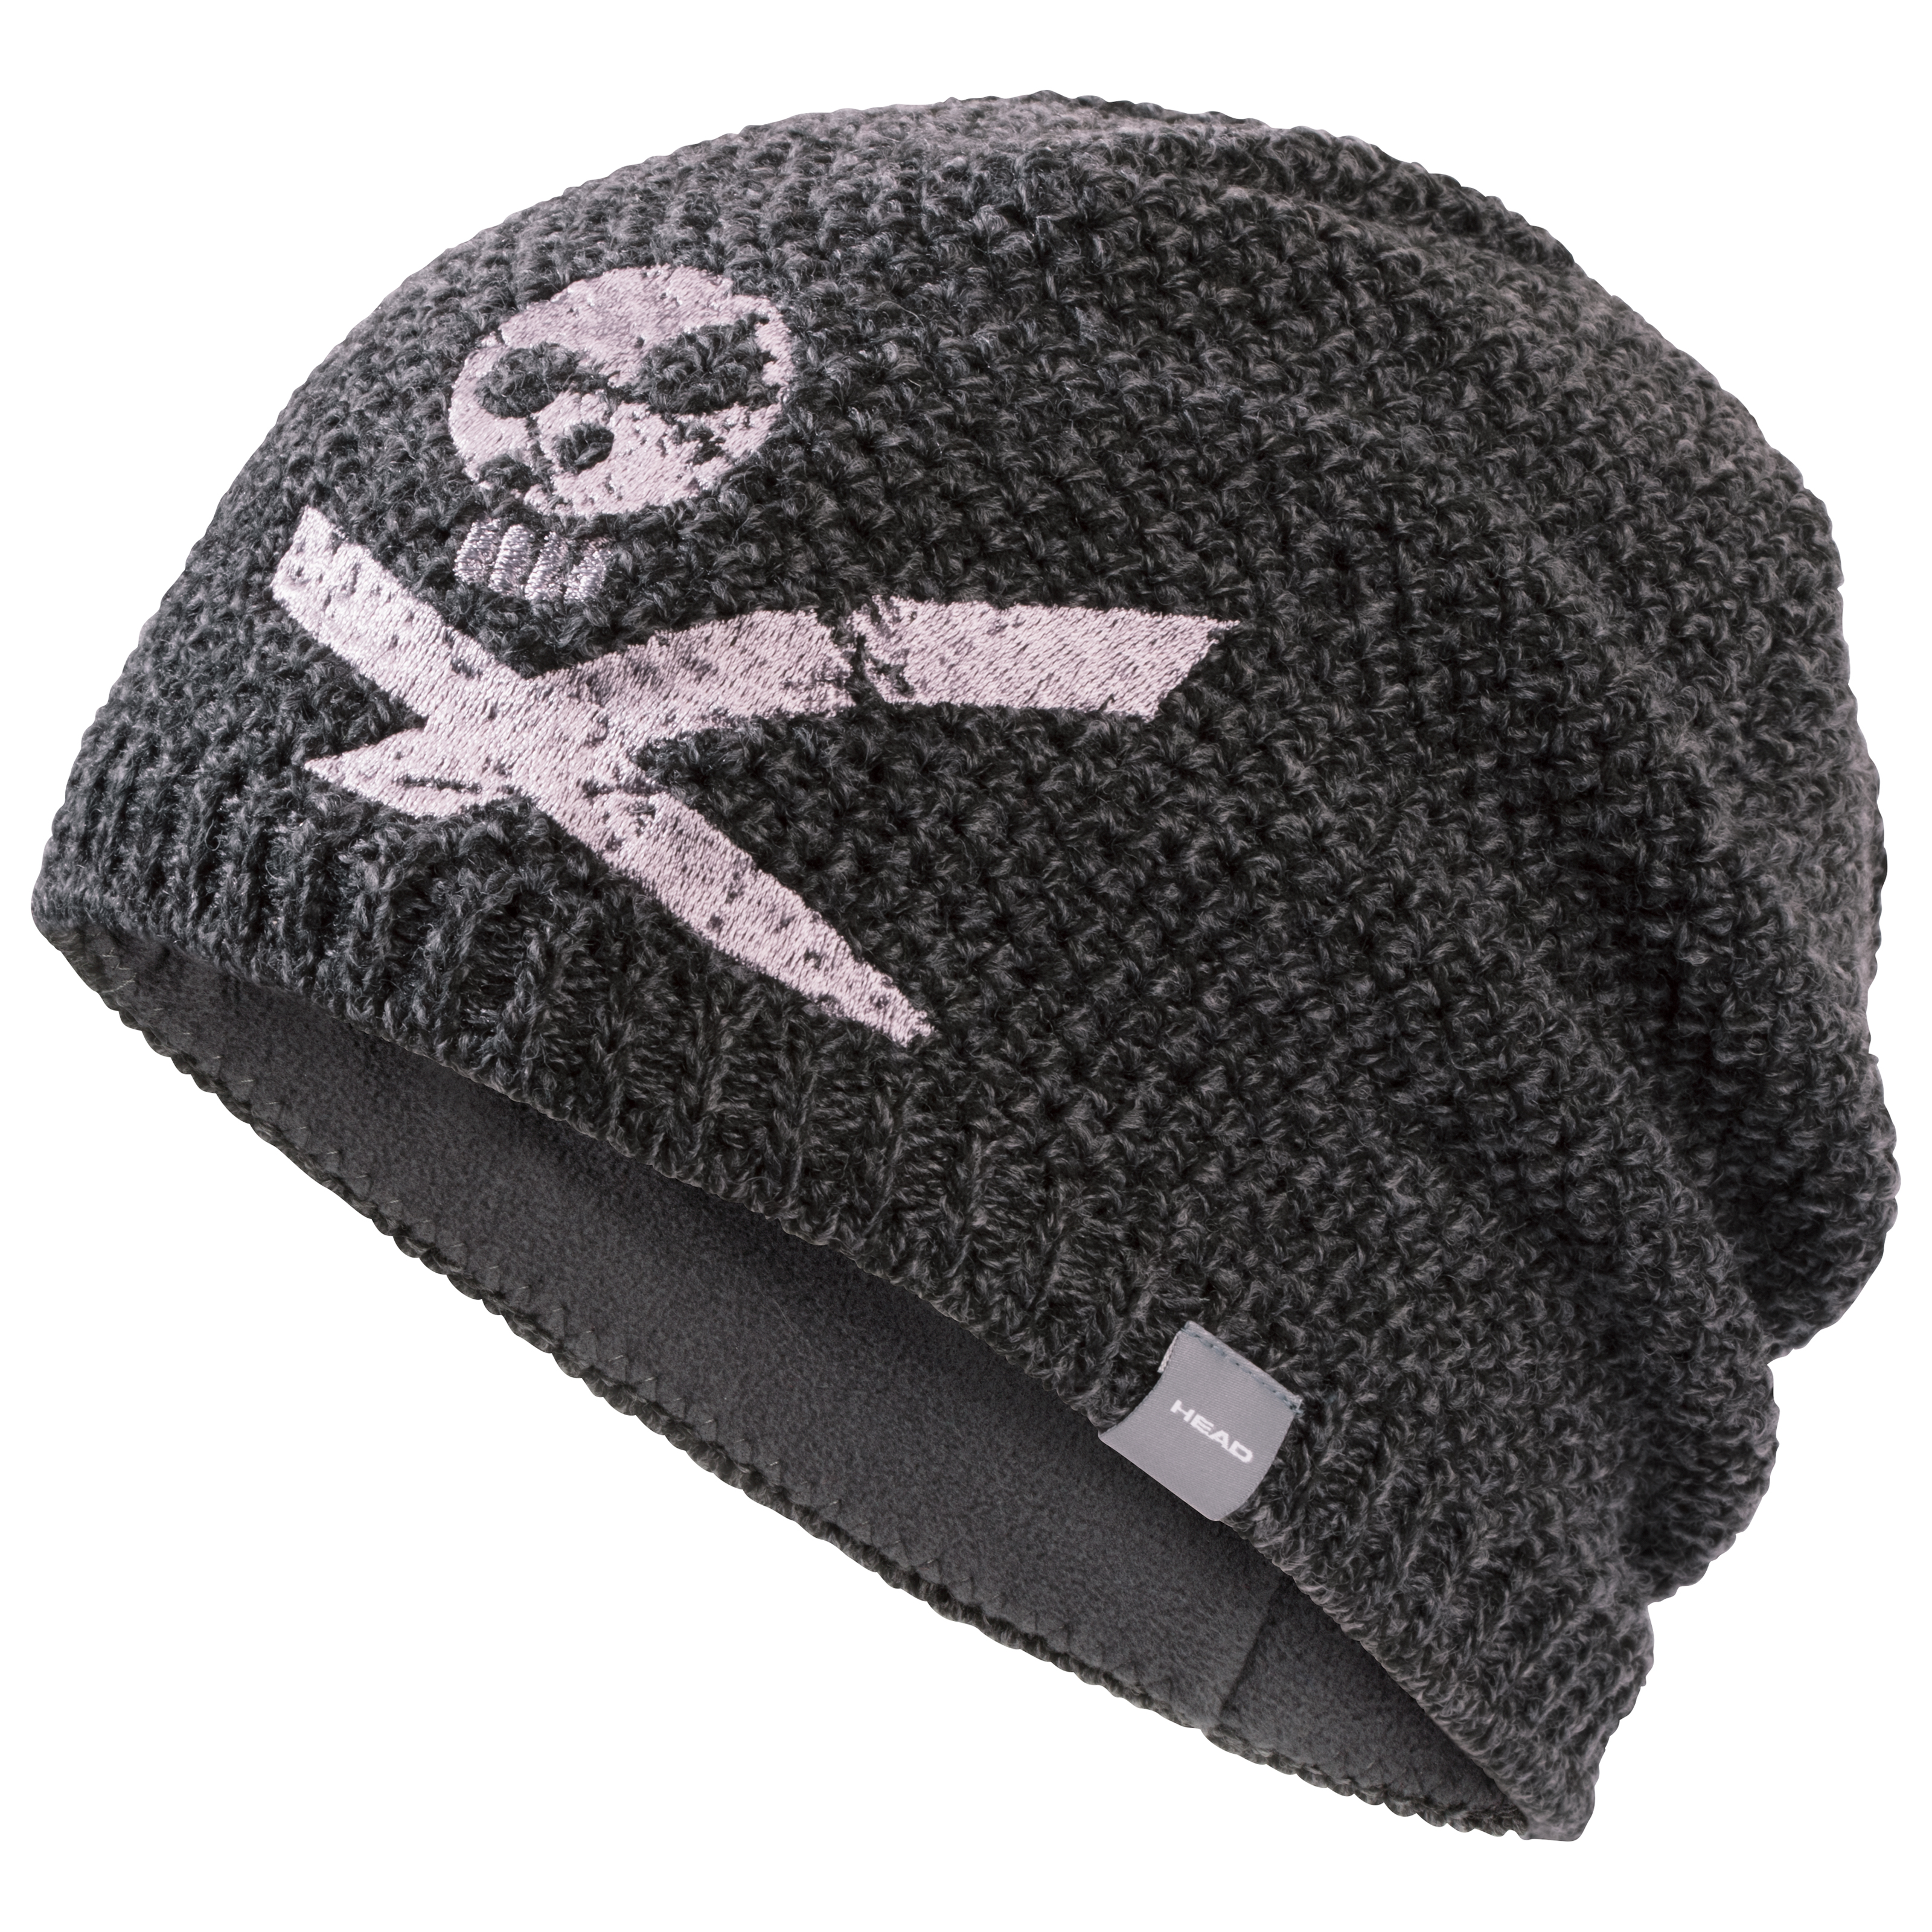 HEAD RACE REBELS BEANIE - ( BK) - 2020